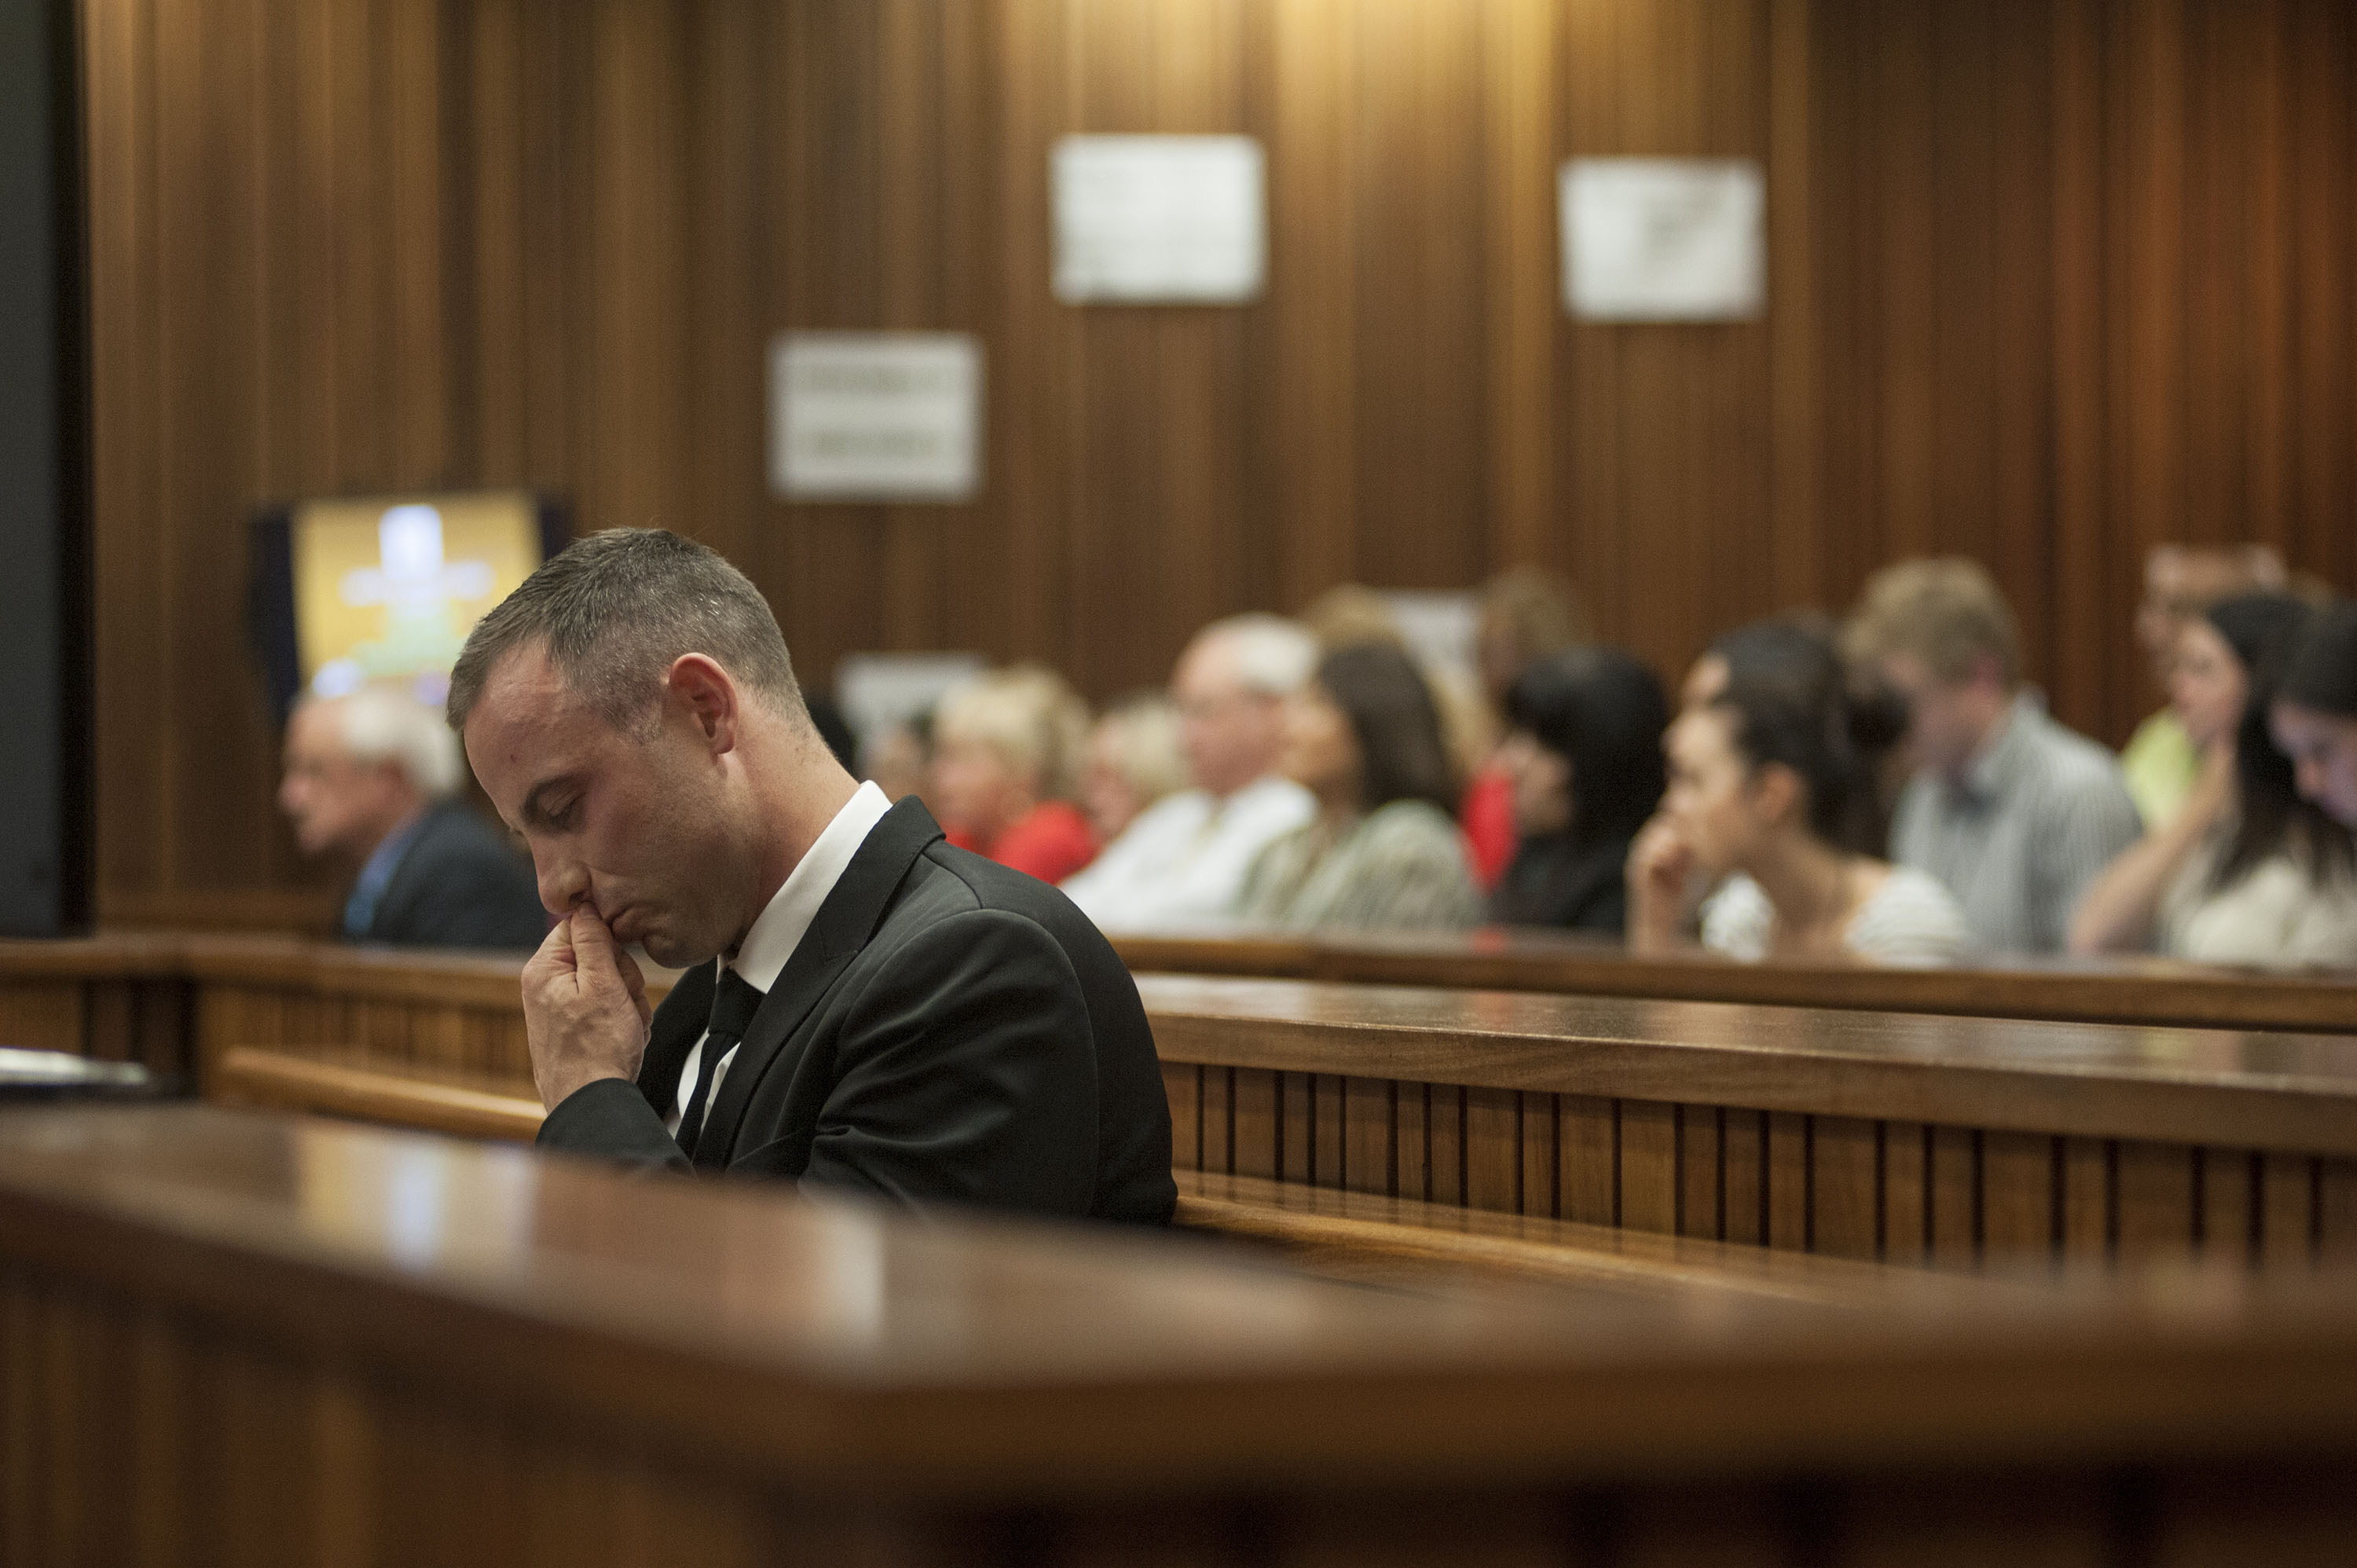 Paralympic athlete Oscar Pistorius in court. May 5, 2014 by Ihsaan Haffejee. Demotix.